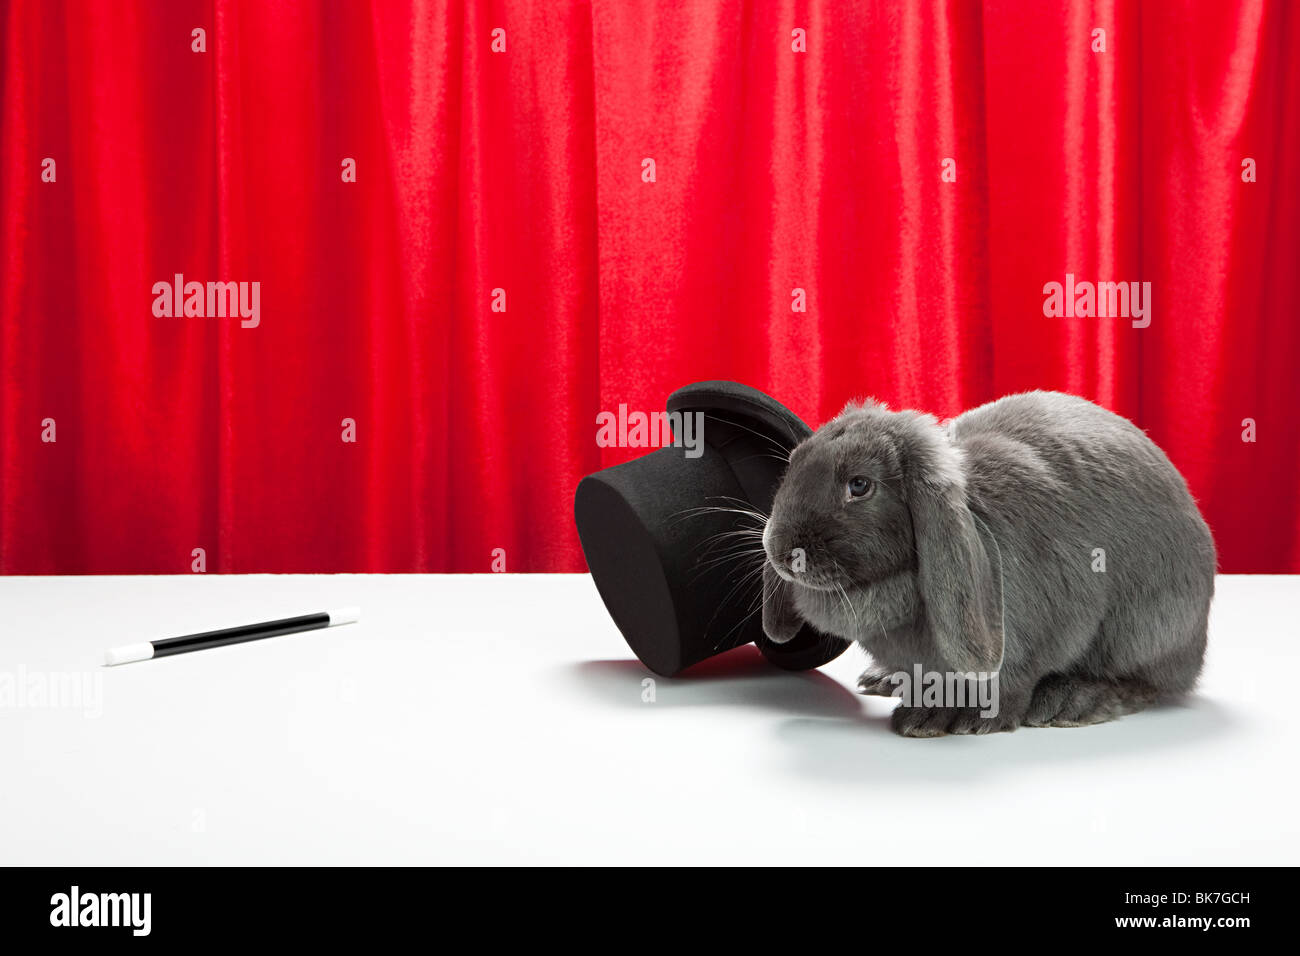 Rabbit with top hat and magic wand - Stock Image